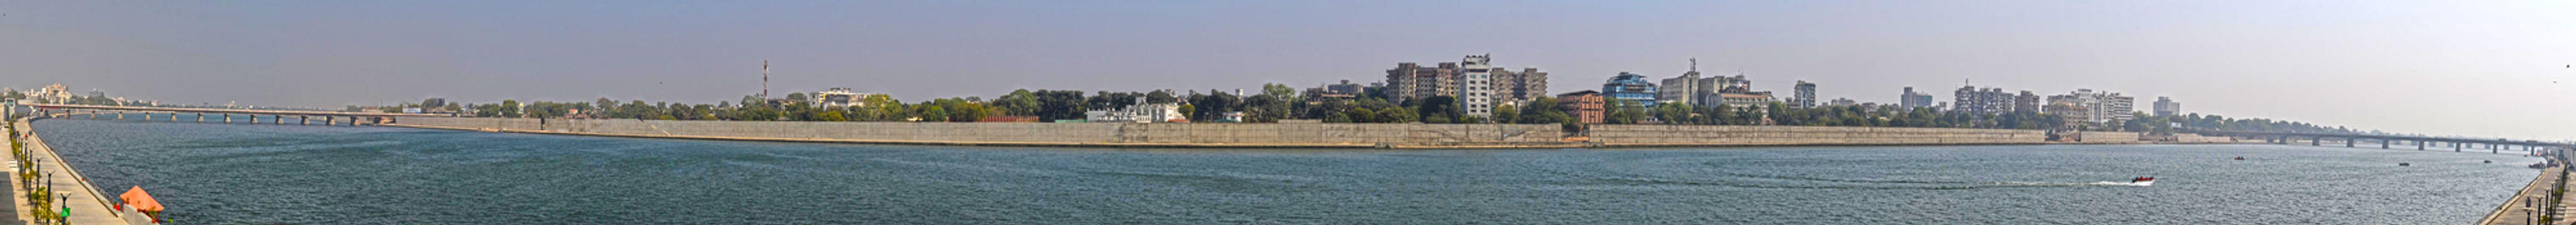 City: Ahmedabad 38 by letTheColorsRumble